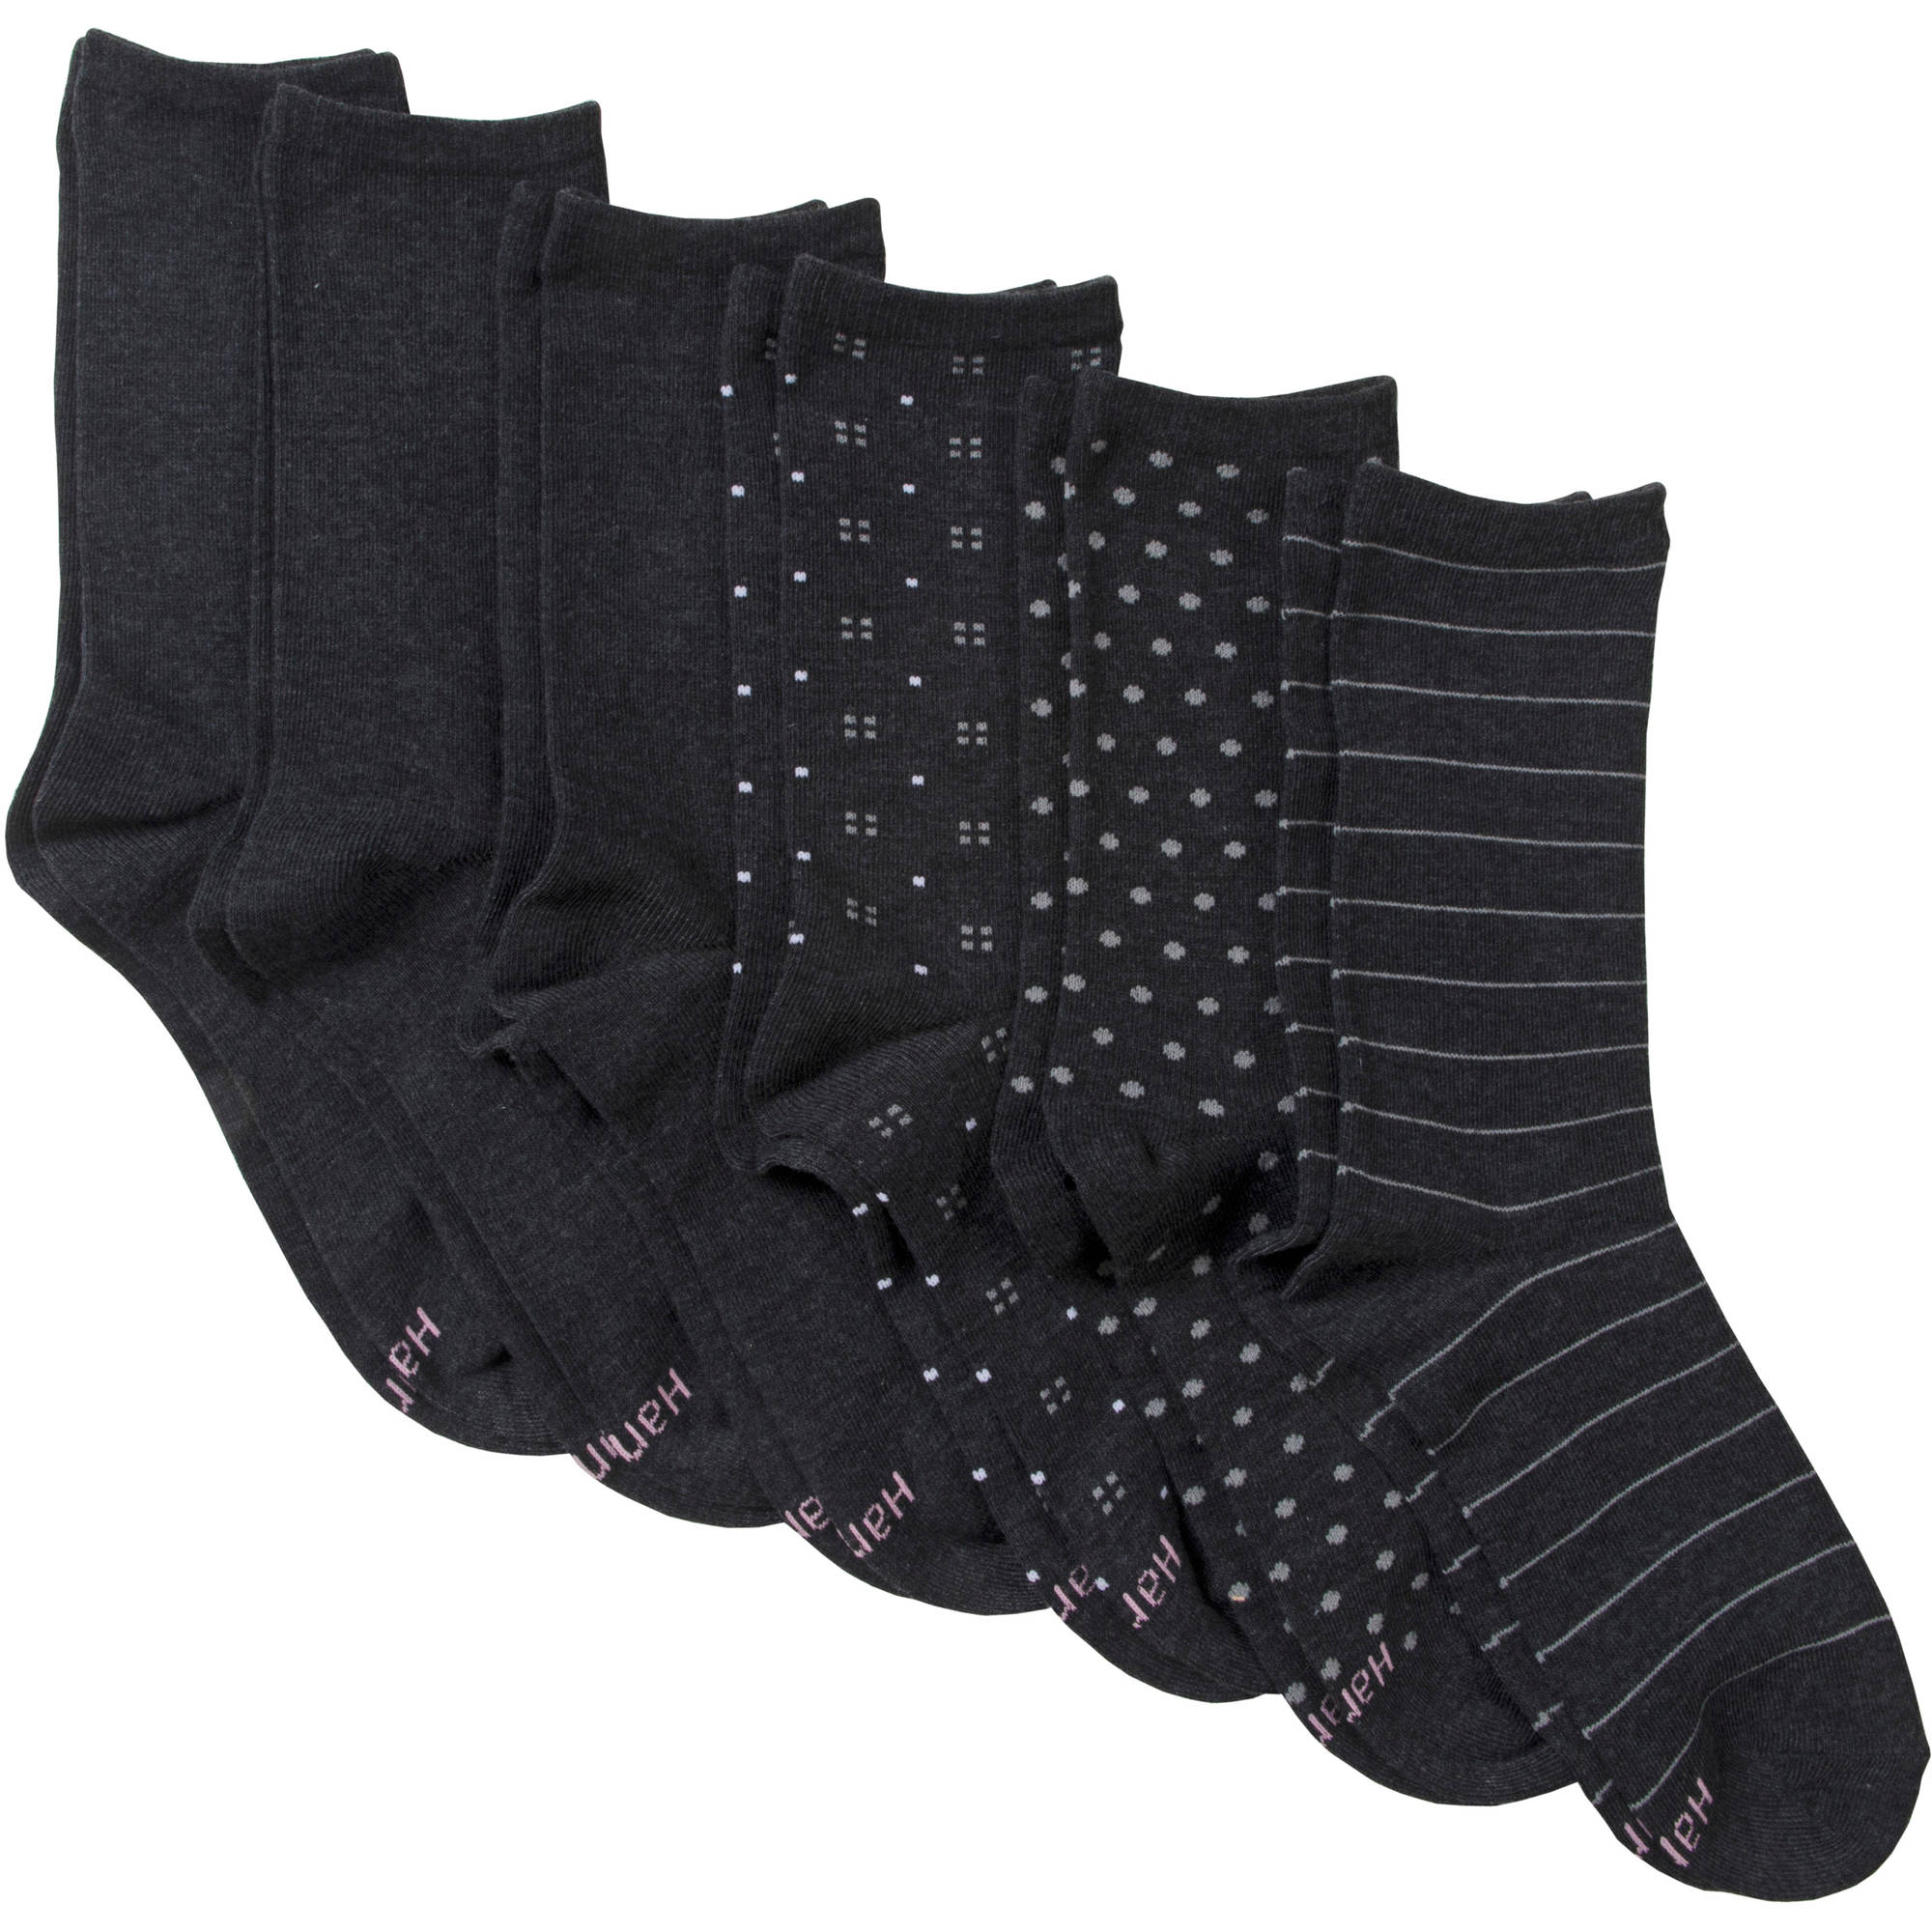 Hanes Women's ComfortBlend Crew Socks - Extended Sizes - 6 Pair